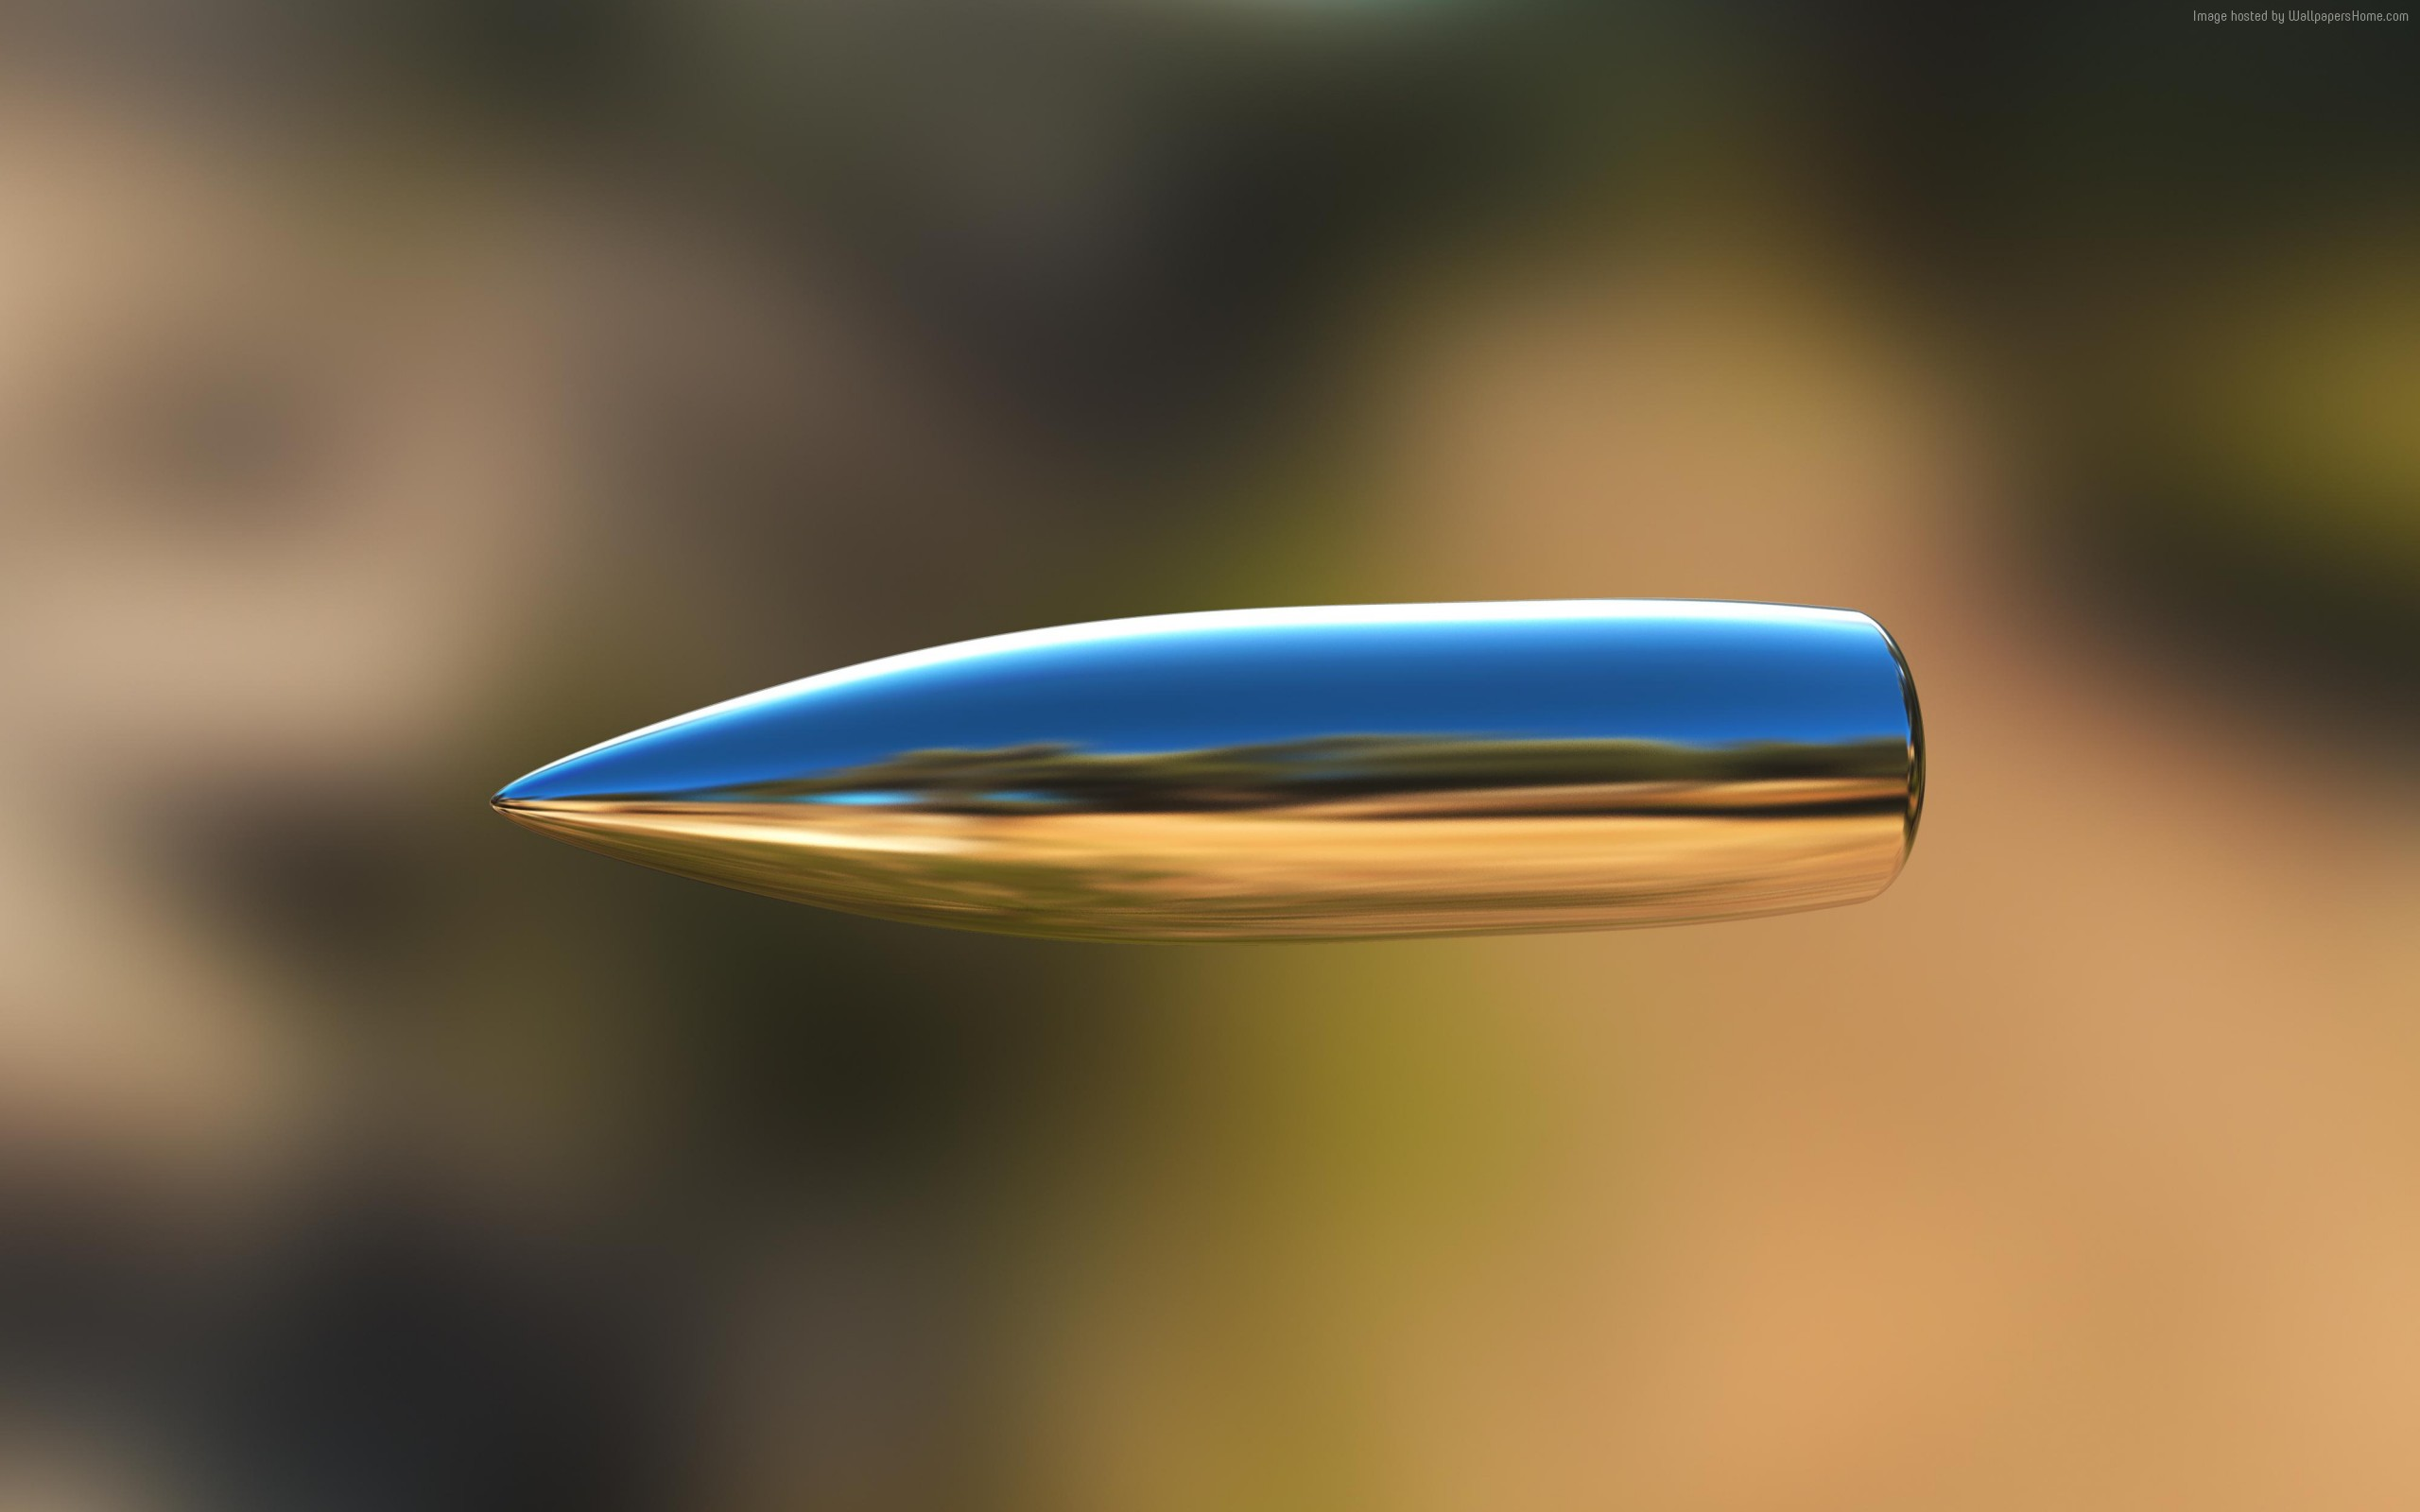 Wallpaper Of Bullet Blur Reflection Background Hd Image